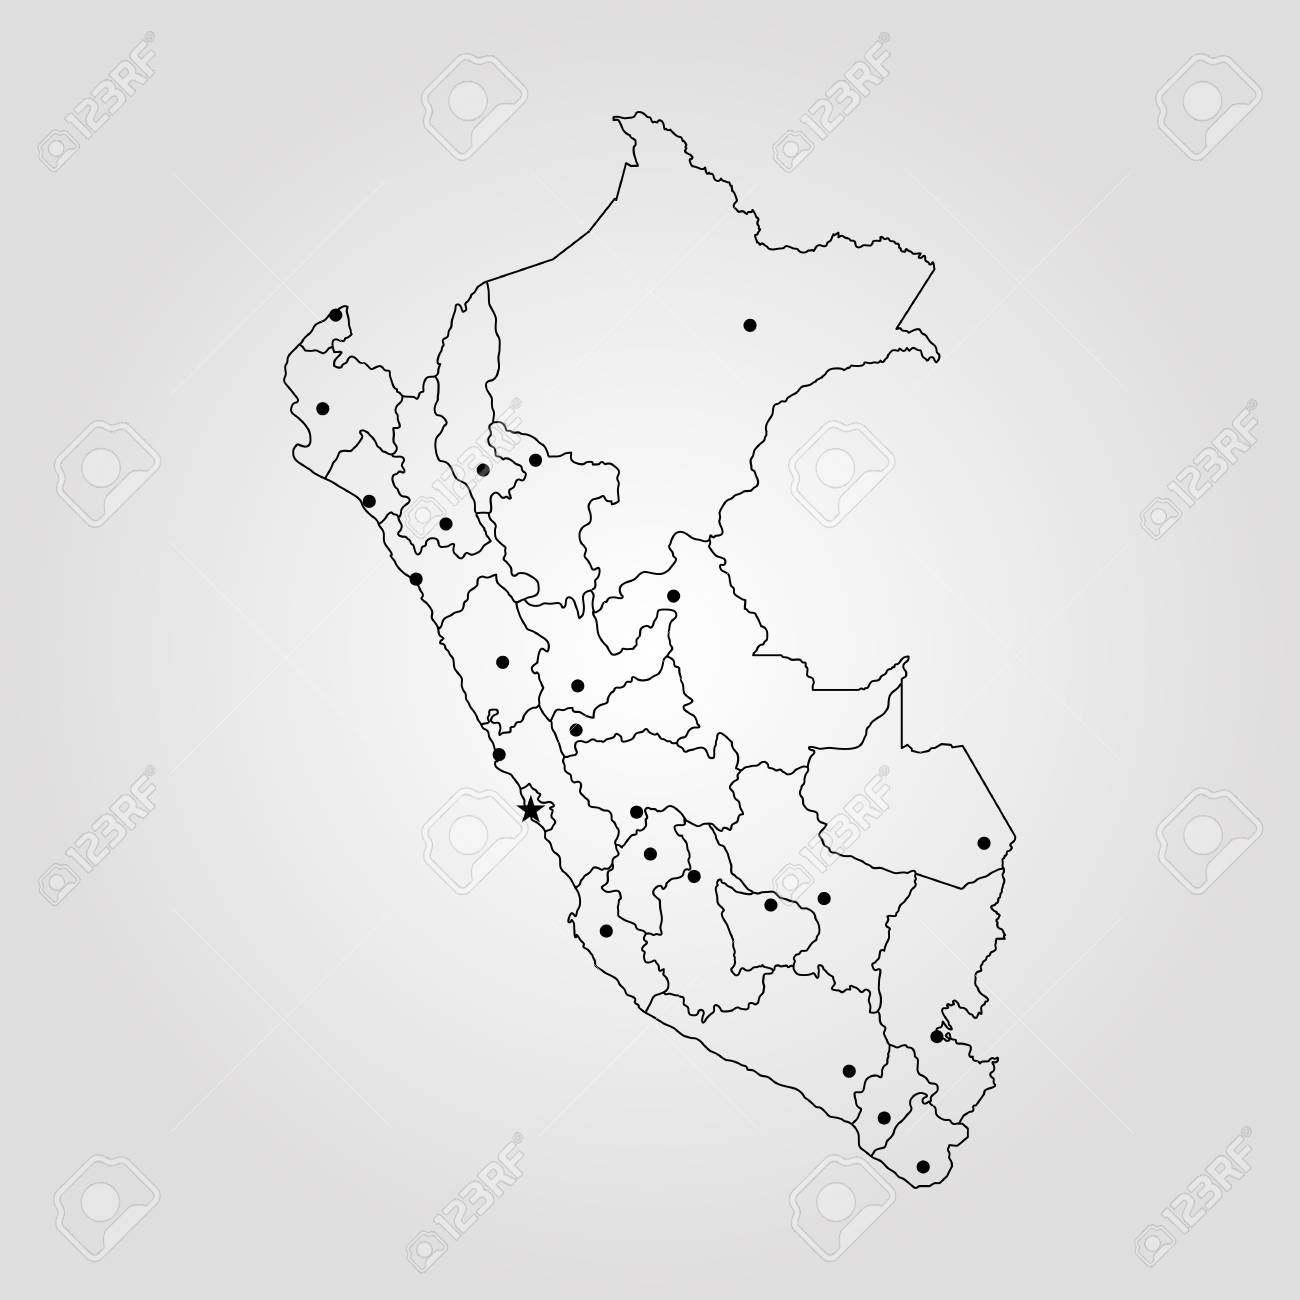 Peru On The World Map.Map Of Peru Vector Illustration World Map Royalty Free Cliparts